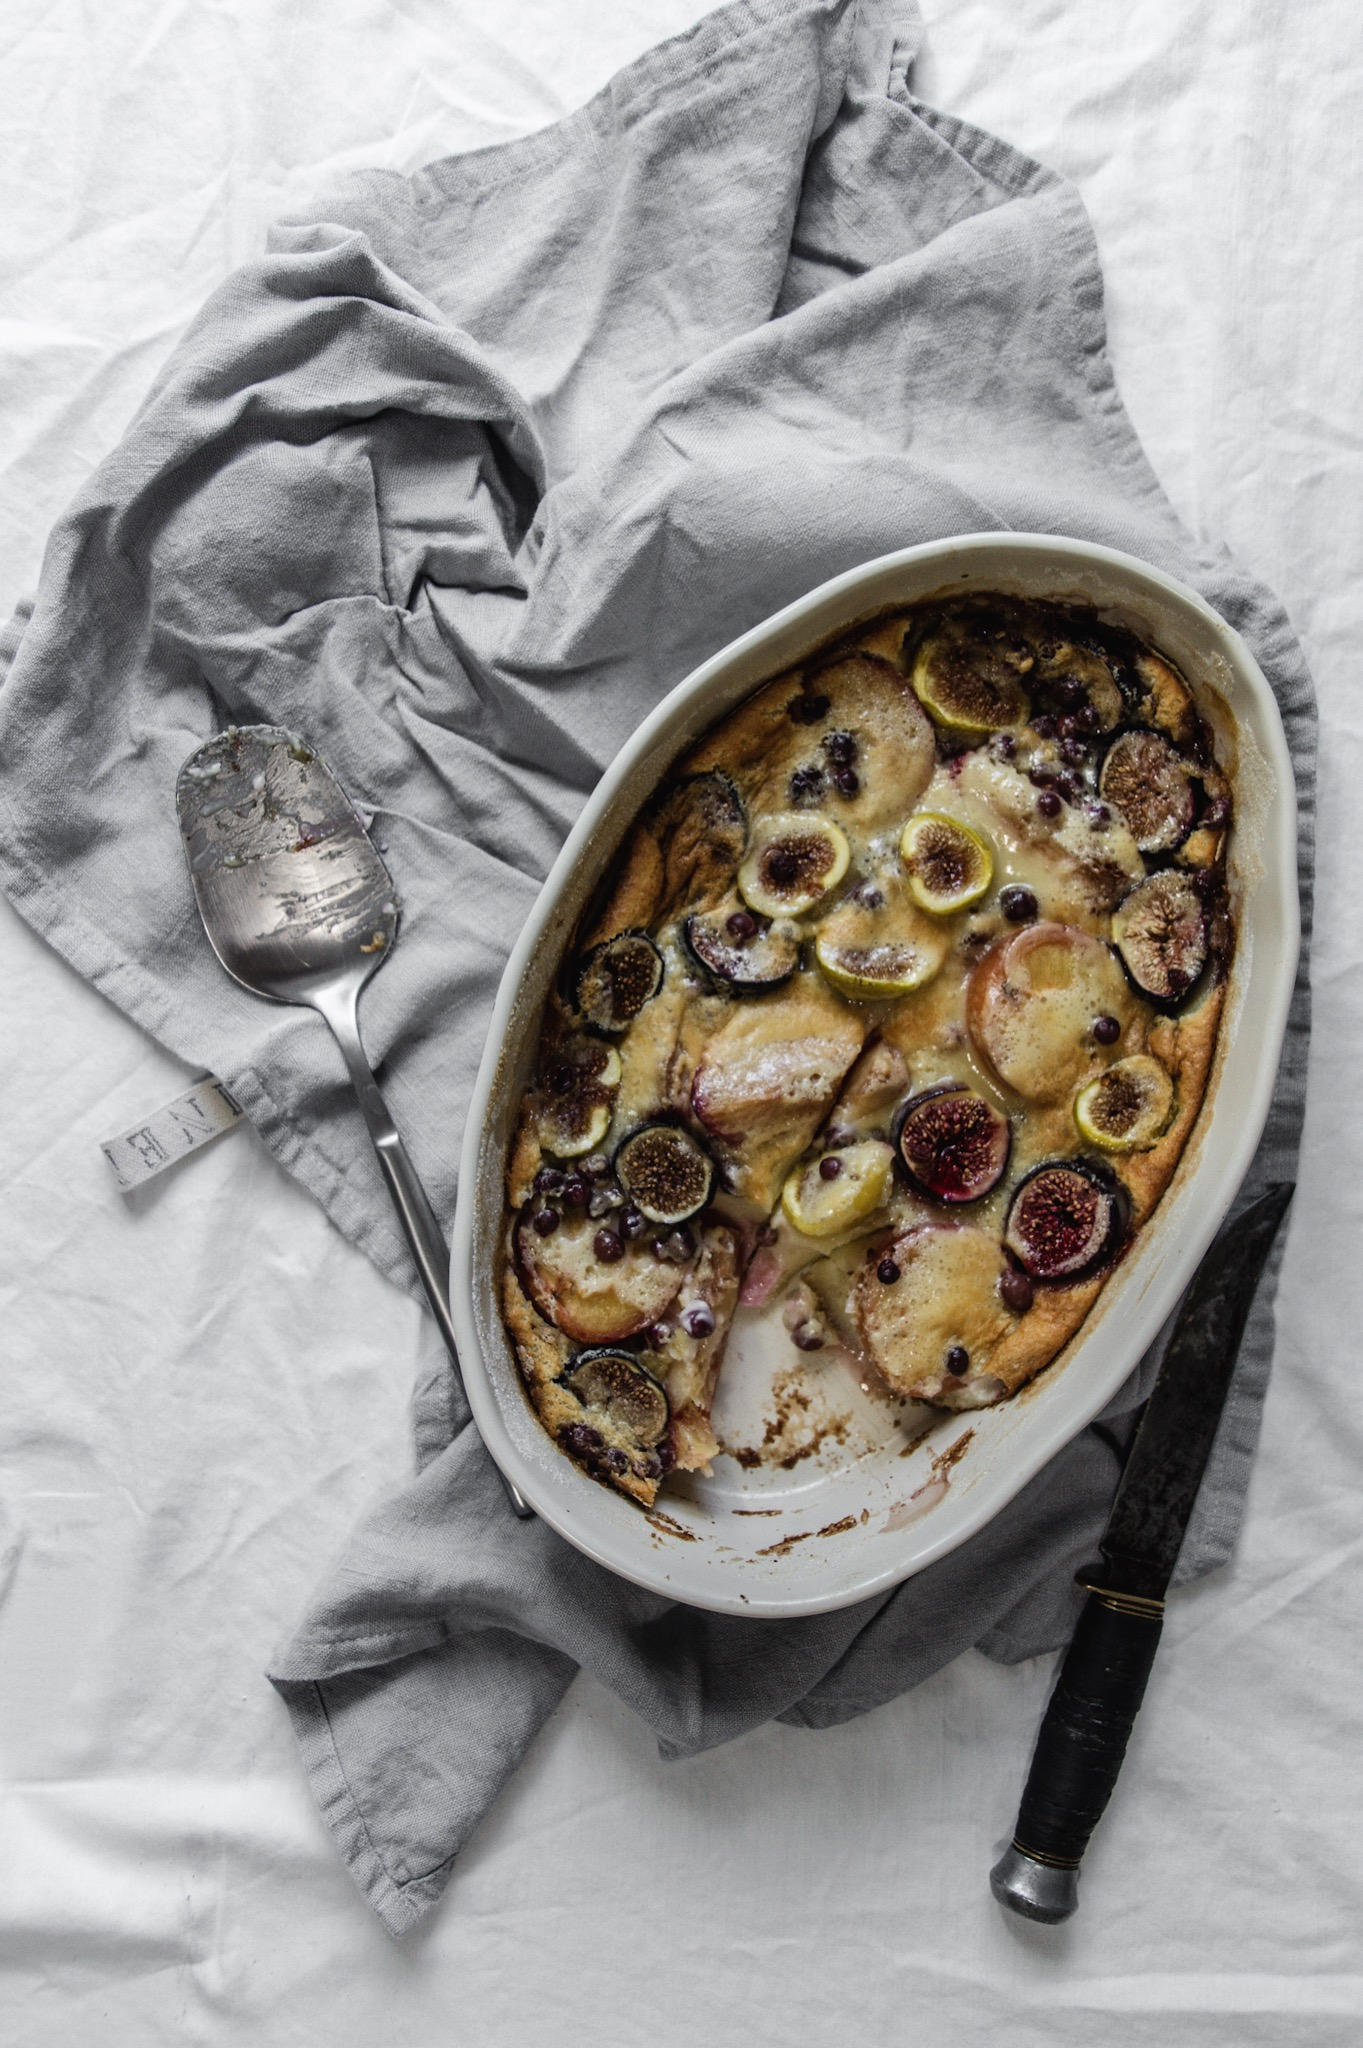 French clafoutis gets a late summer twist with plums and figs.